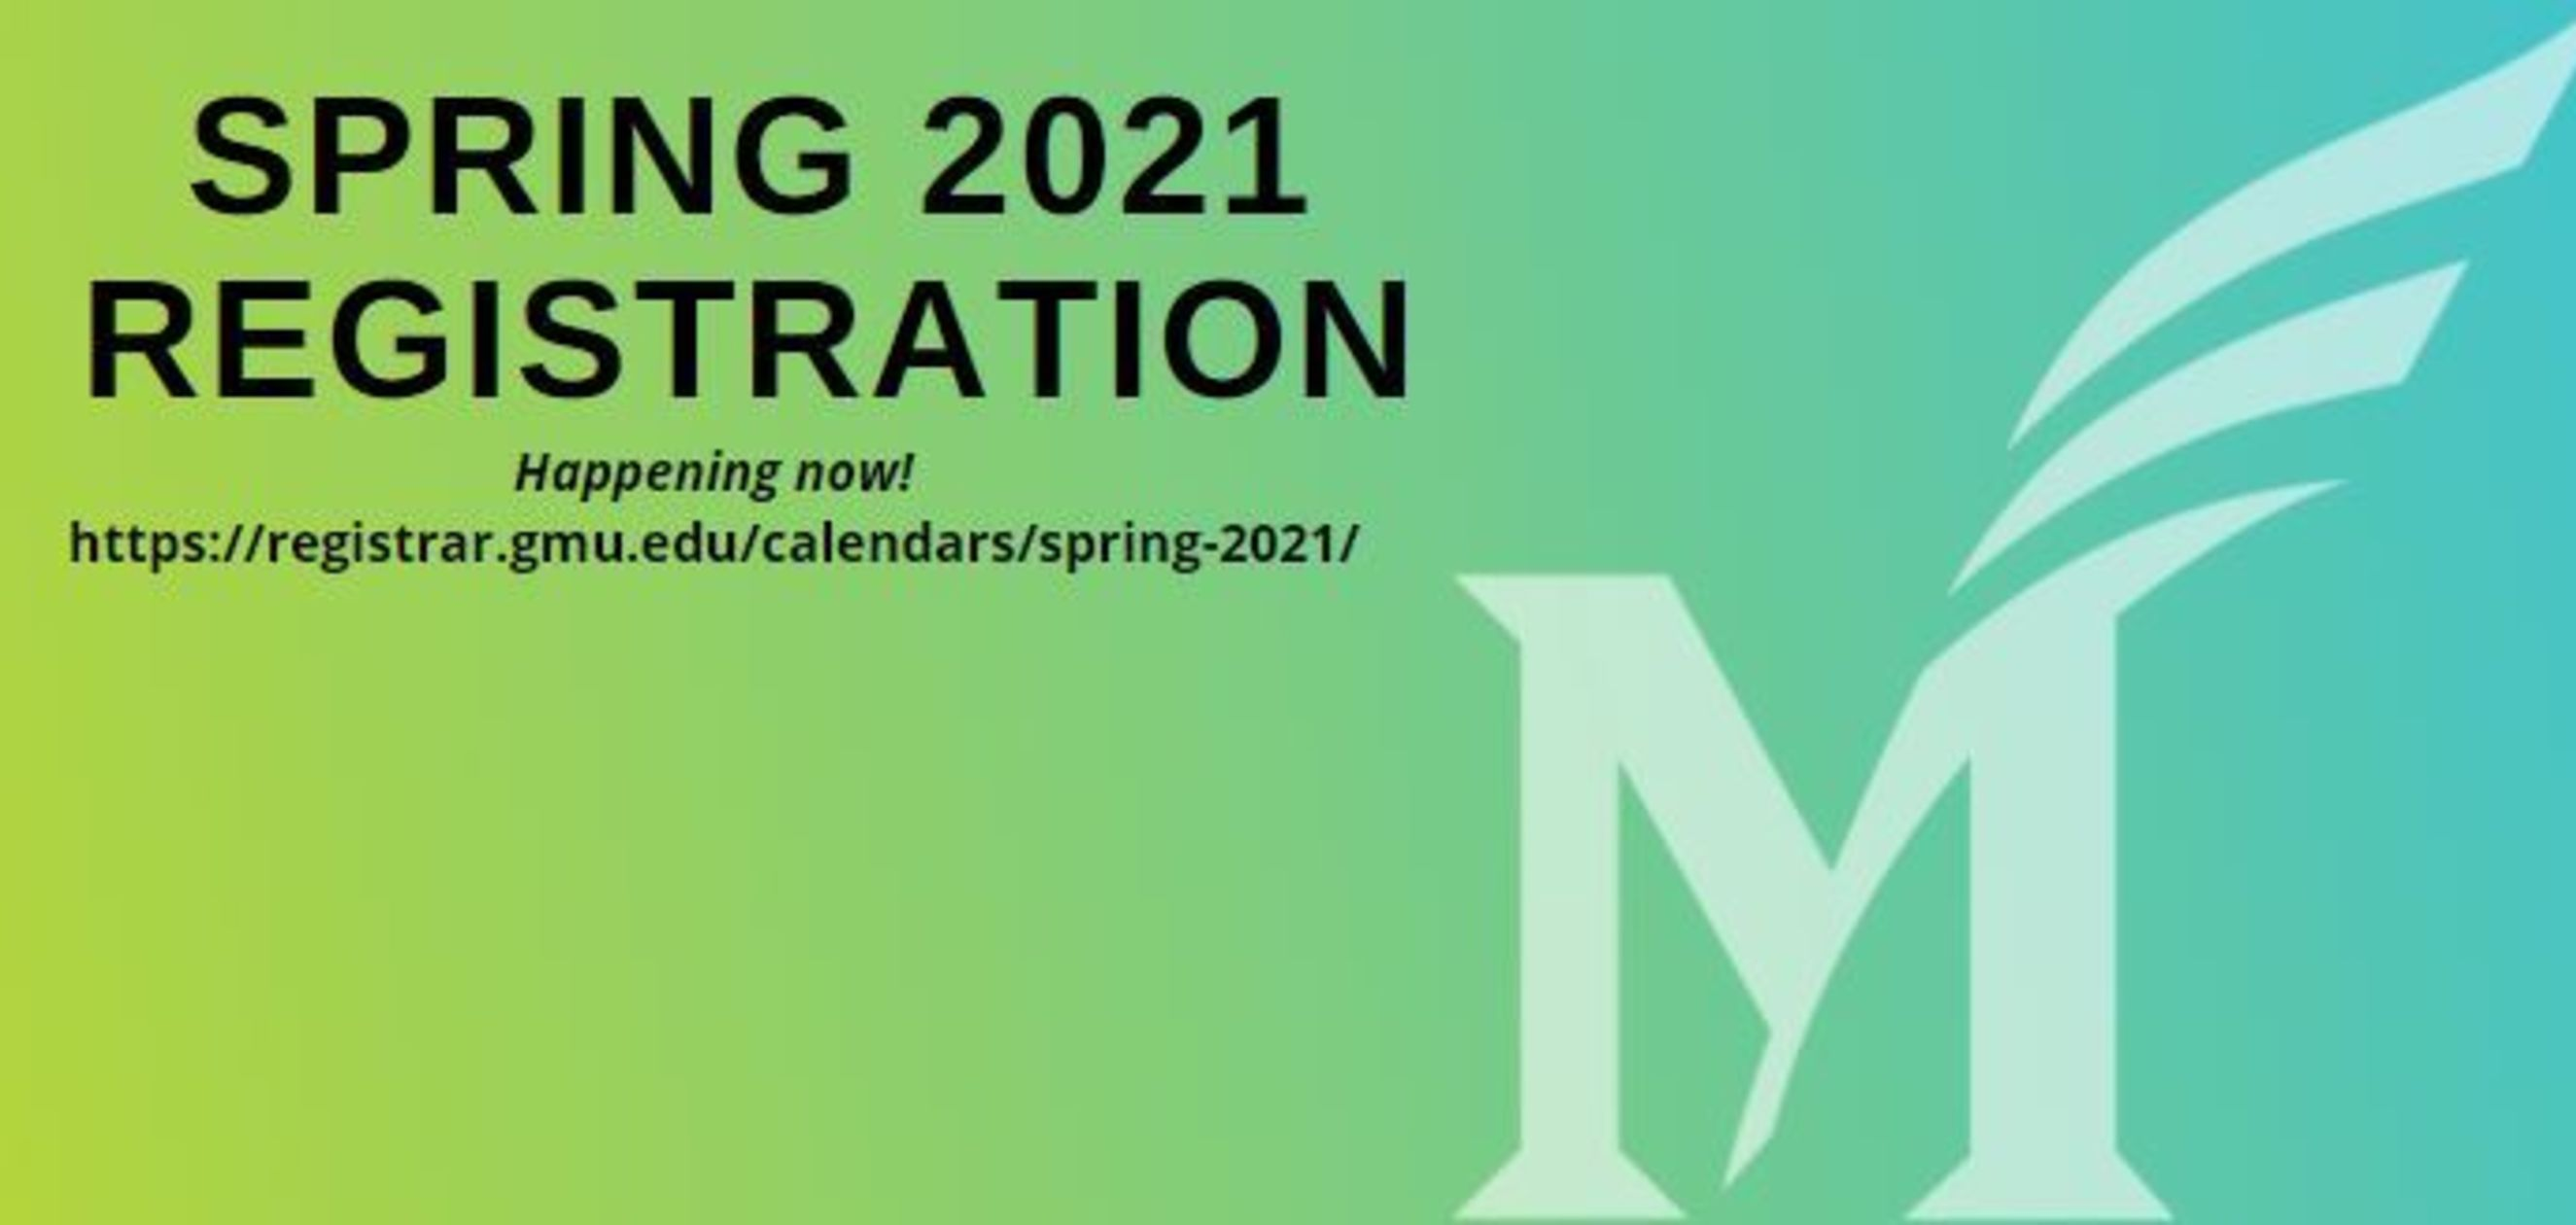 Don't Forget to Register for Spring 2021!